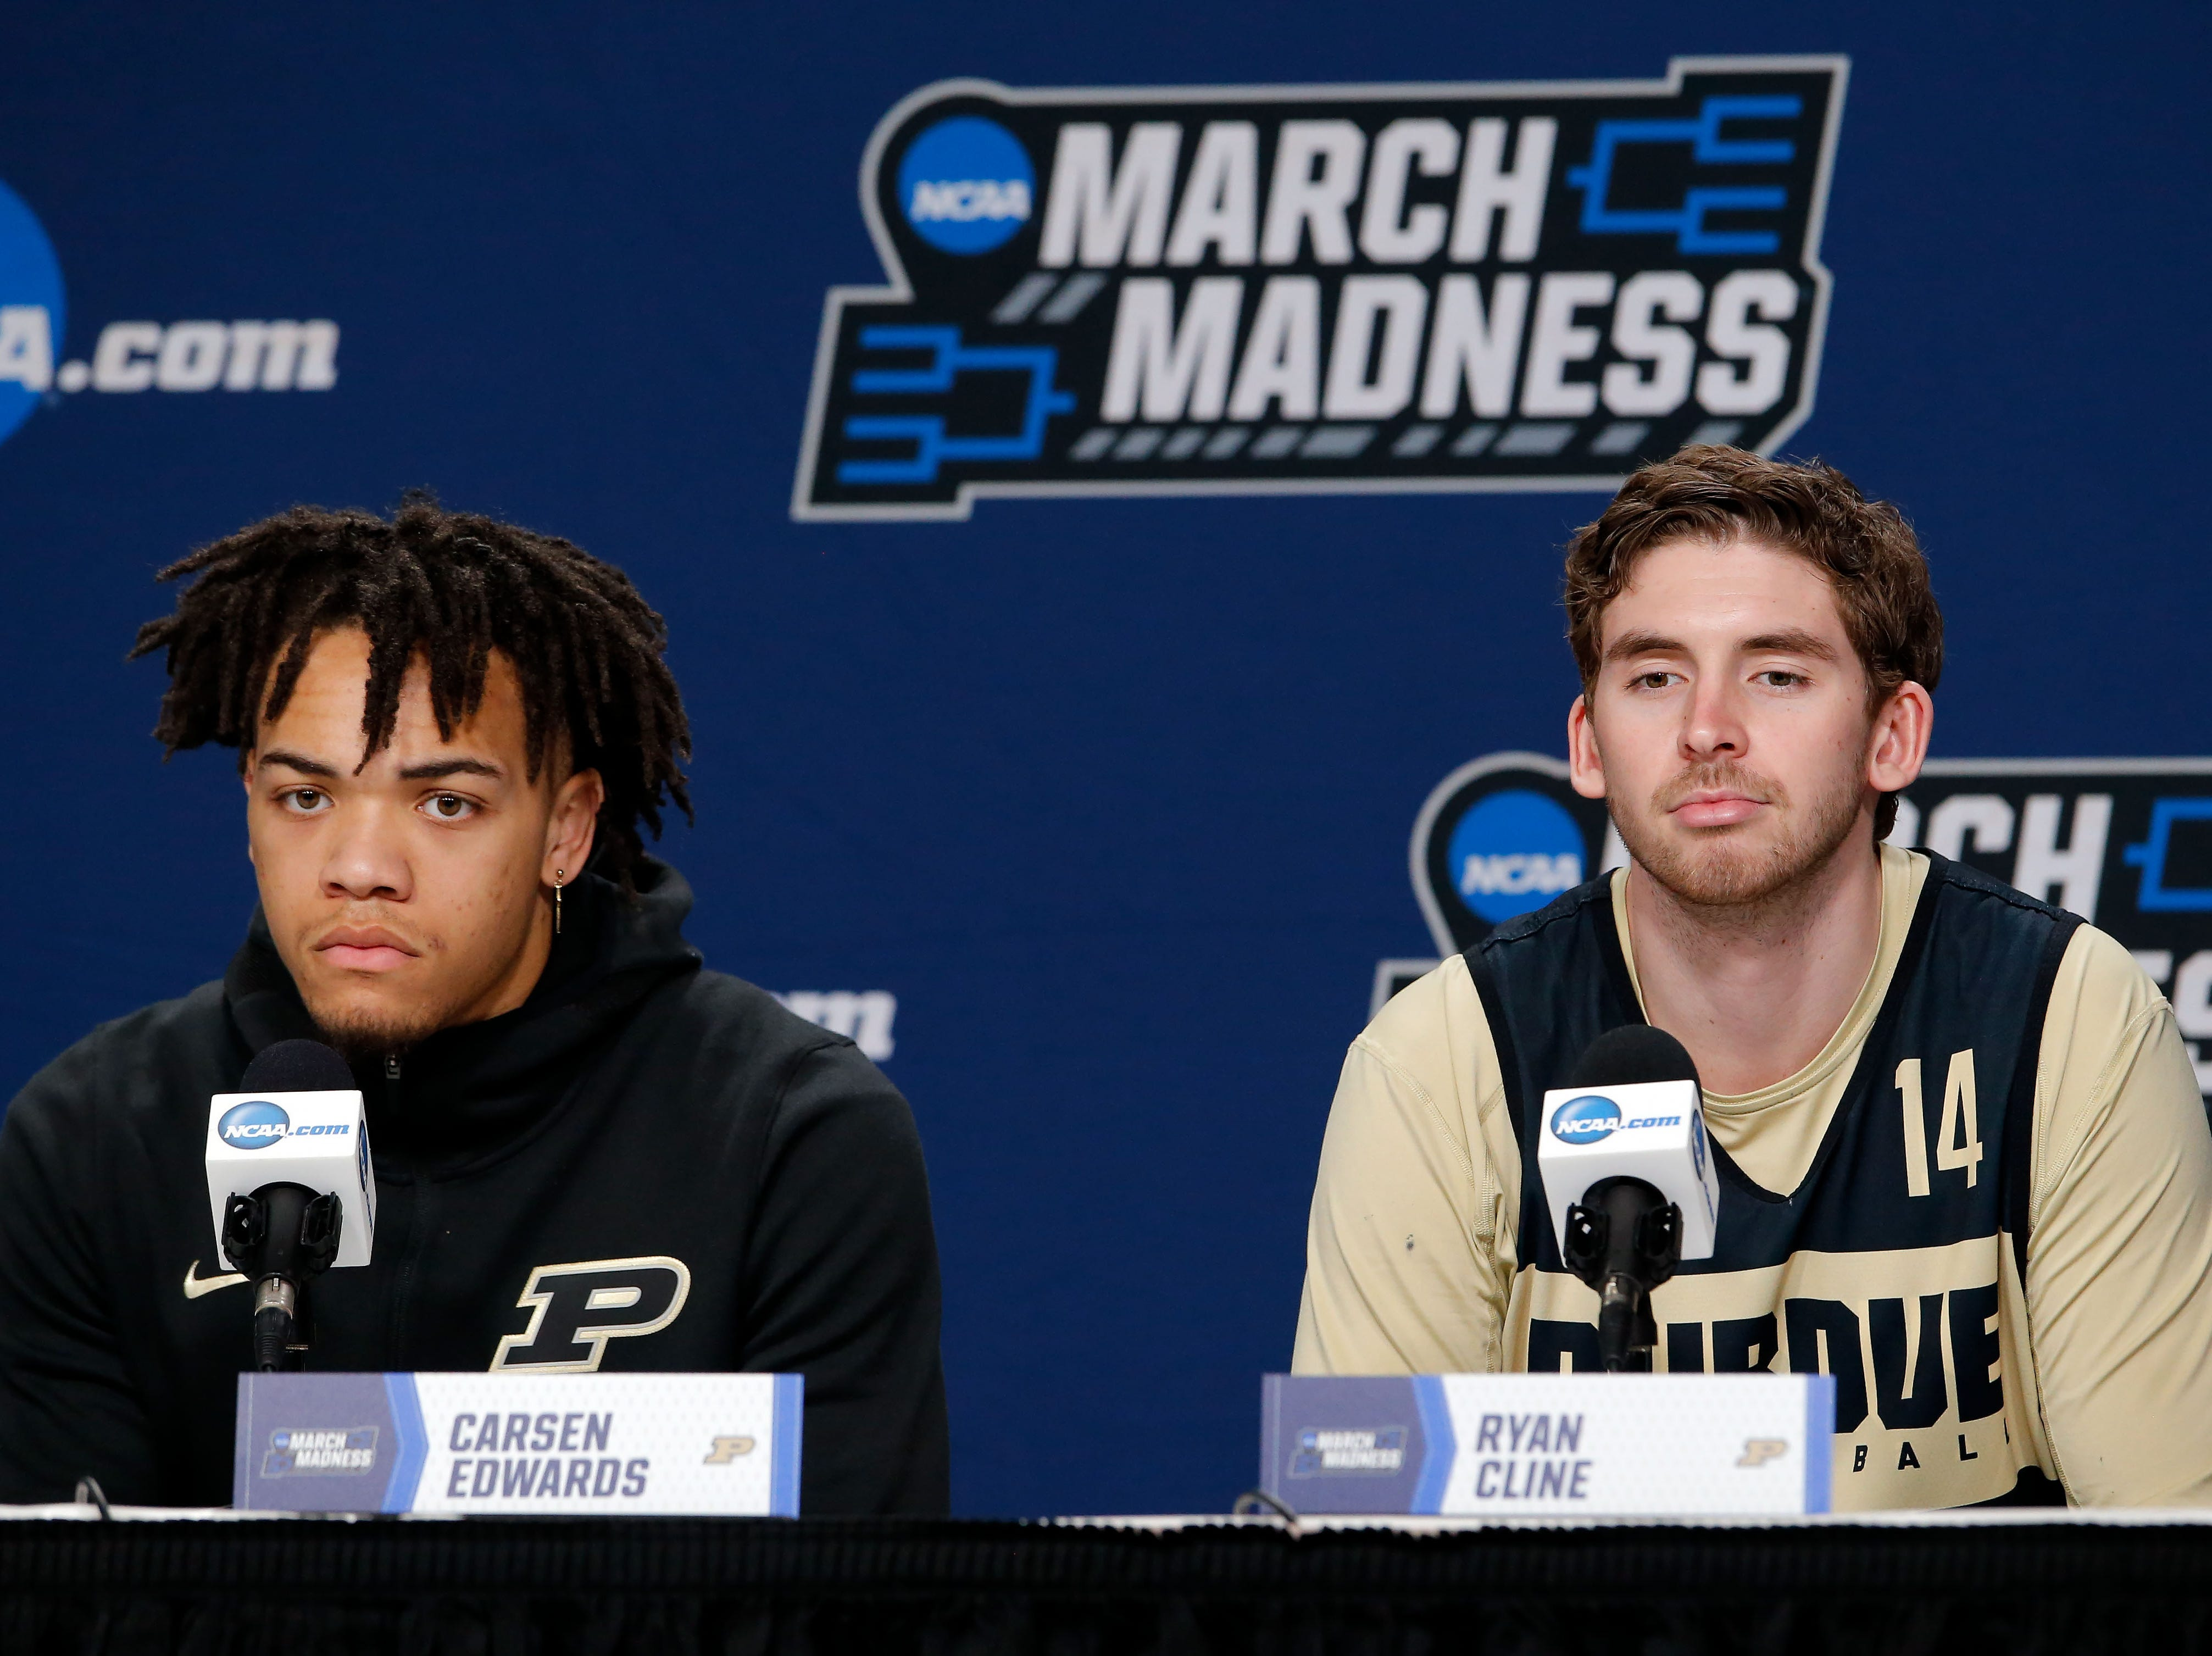 Mar 20, 2019; Hartford, CT, USA; Purdue Boilermakers guard Carsen Edwards (3) and guard Ryan Cline (14) talk with the media before practice in the first round of the 2019 NCAA Tournament at XL Center. Mandatory Credit: David Butler II-USA TODAY Sports